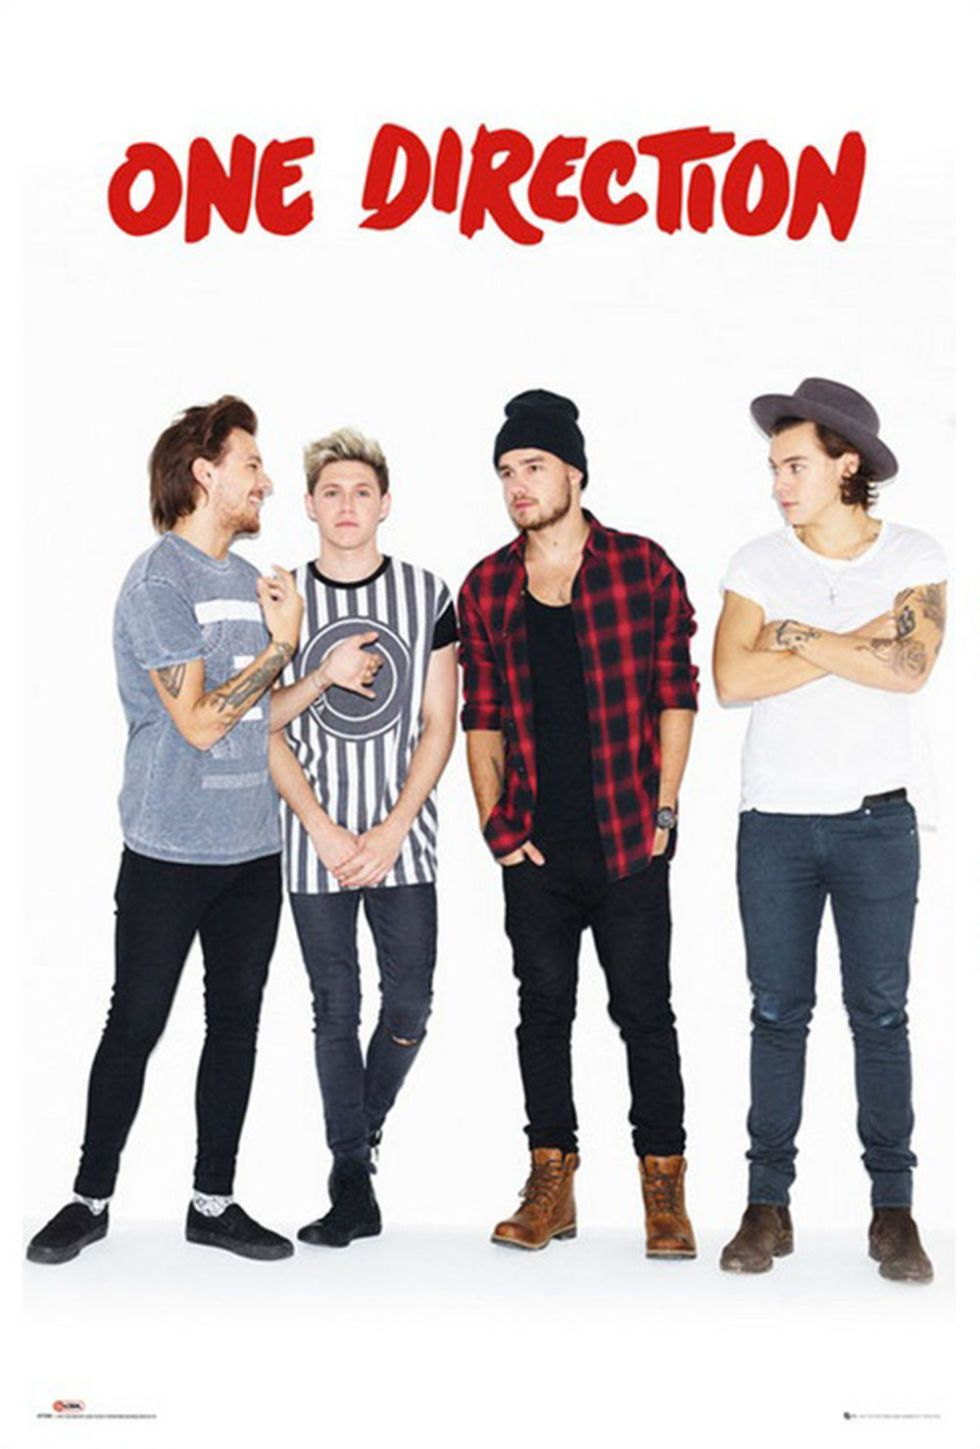 One Direction Wallpaper For Bedroom One Direction Sugarscapecom One Direction Pinterest My